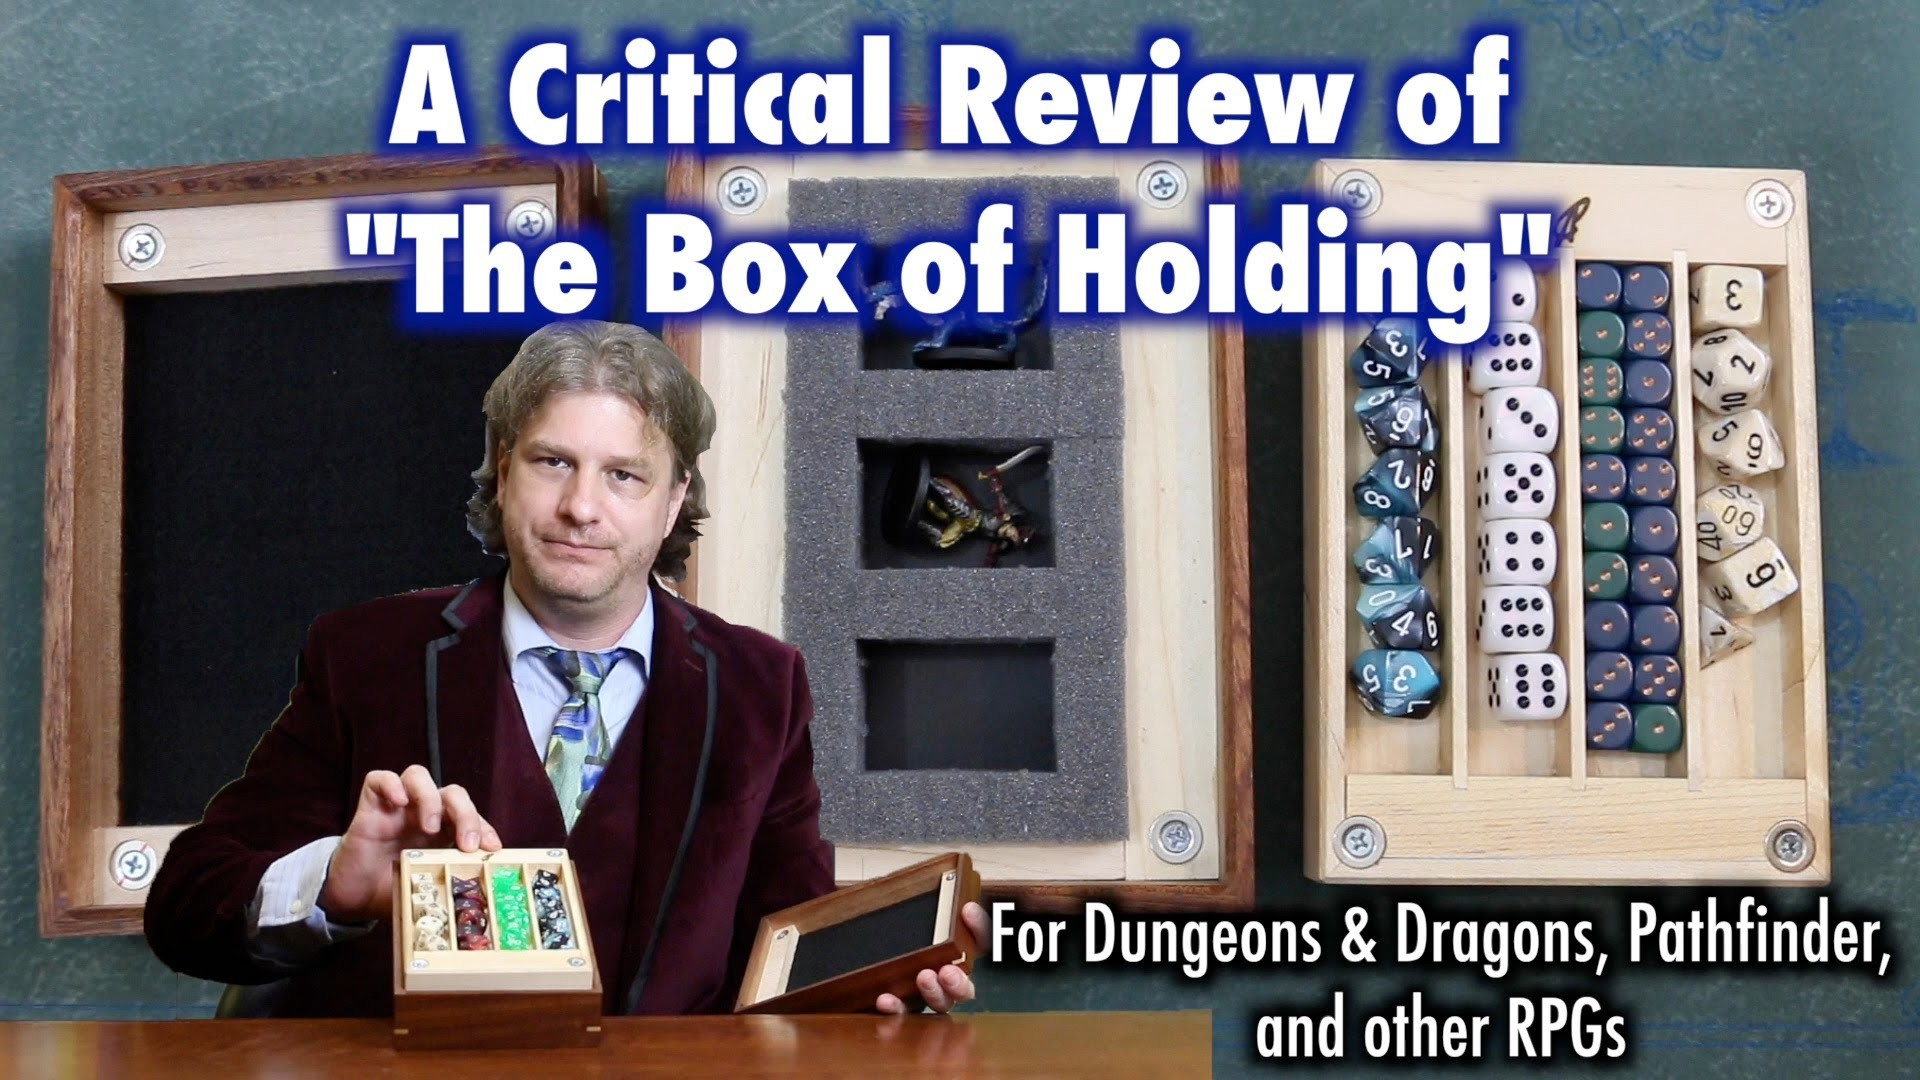 A Critical Review of The Box Of Holding for Dungeons & Dragons, Pathfinder, and other RPGs